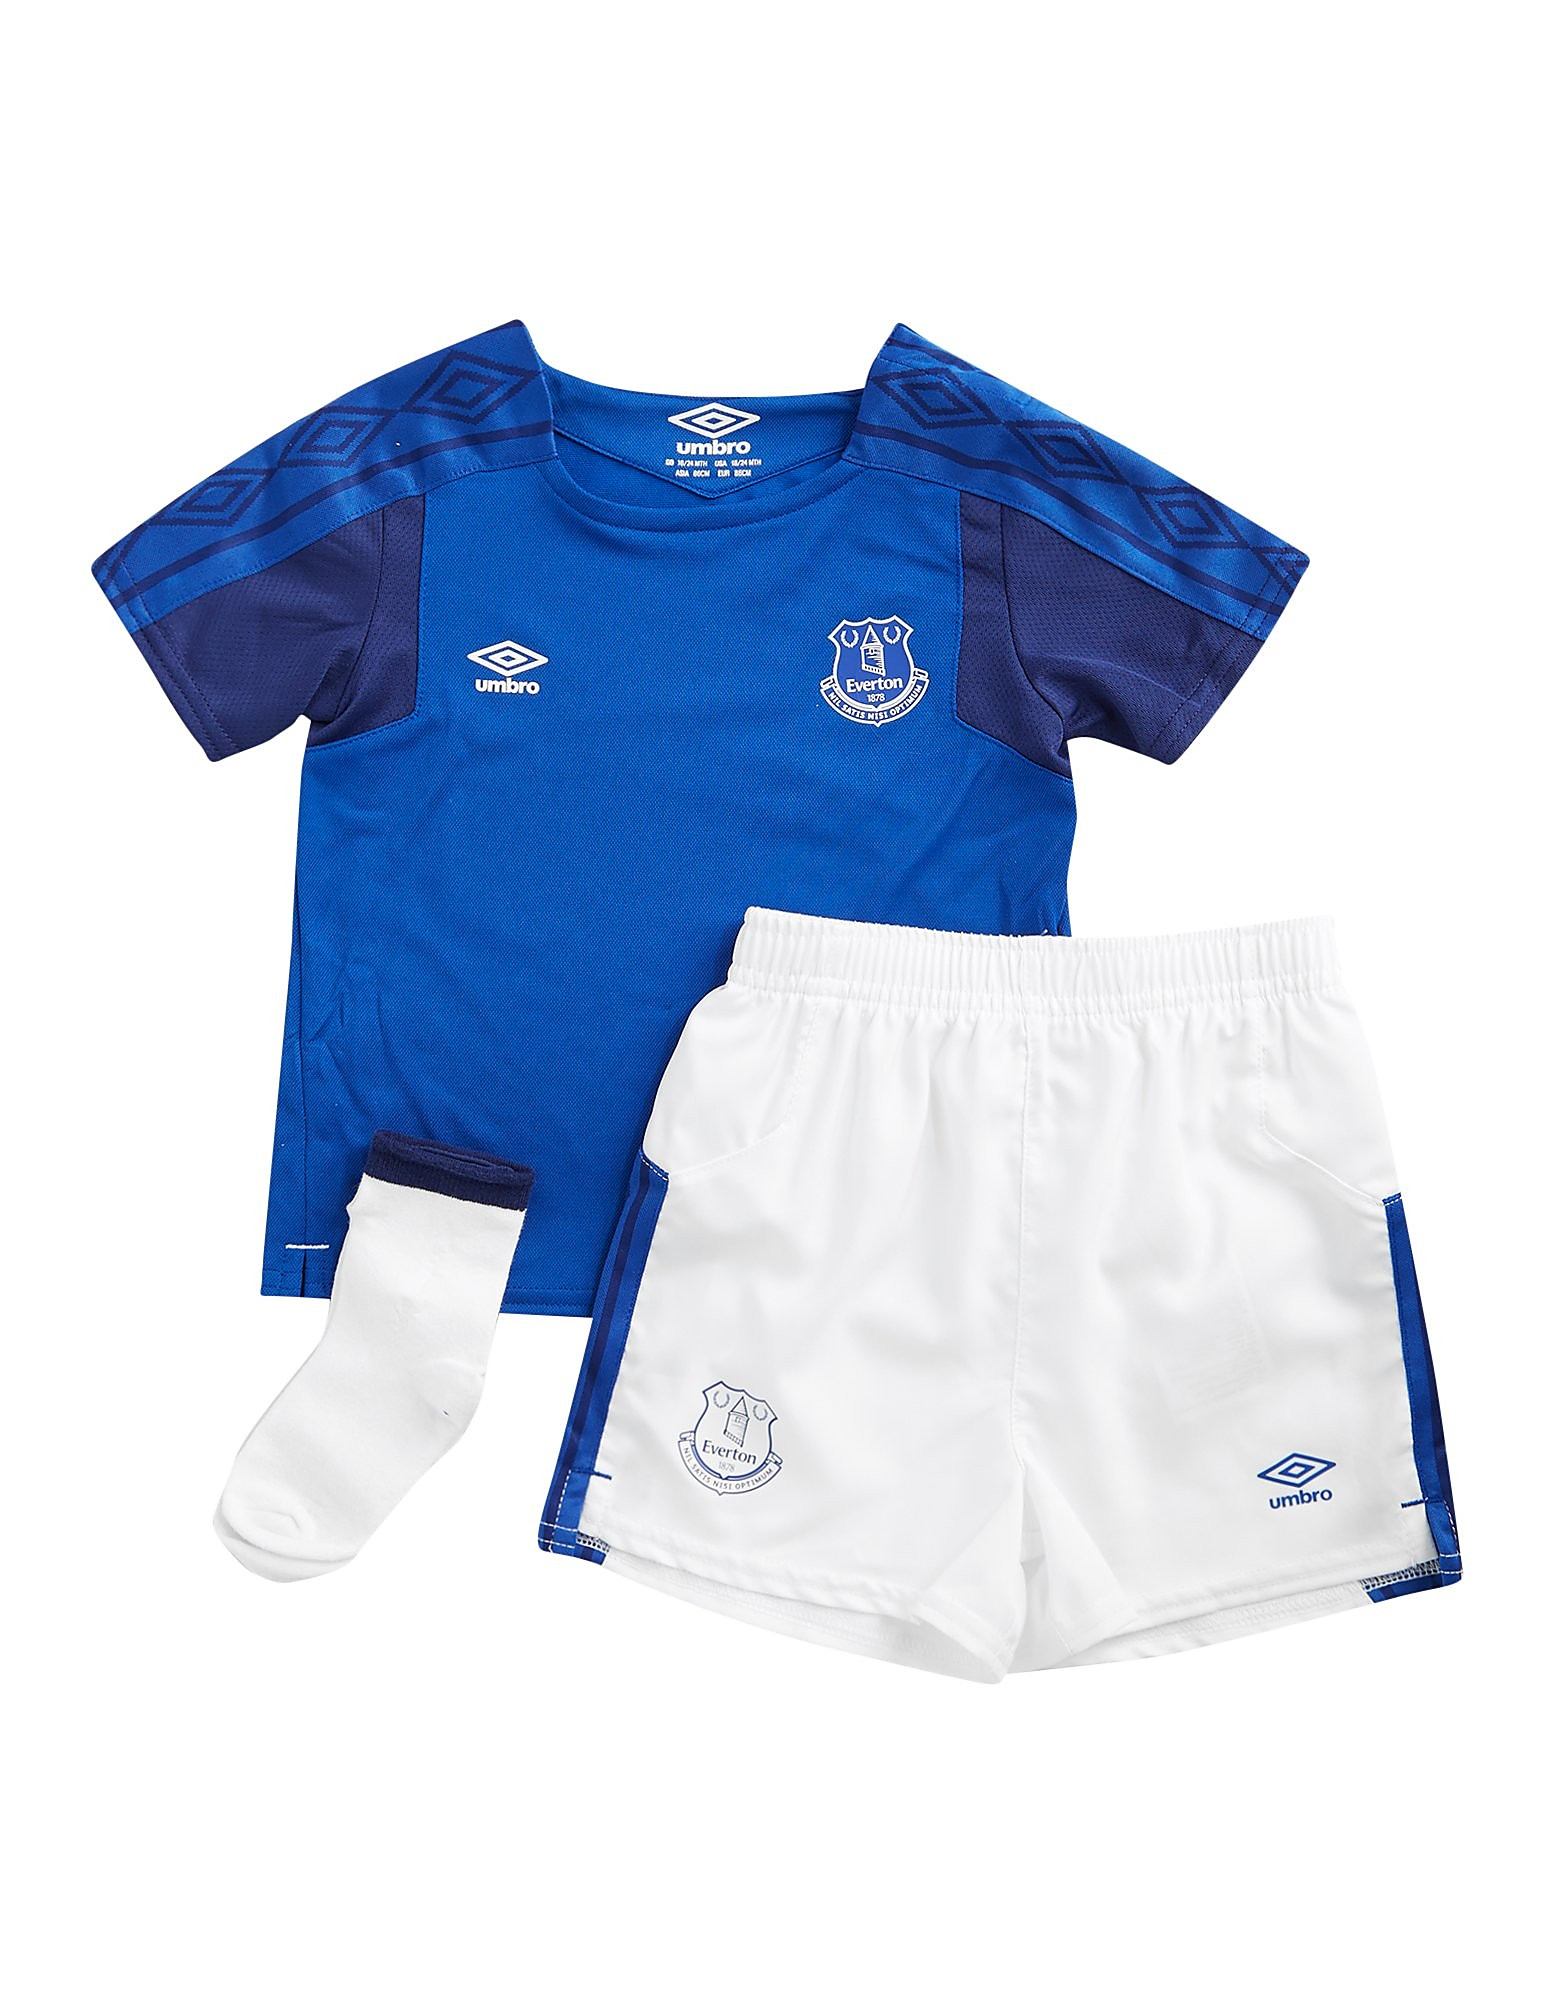 Umbro Everton FC 2017/18 Home Kit Infant PRE ORDER